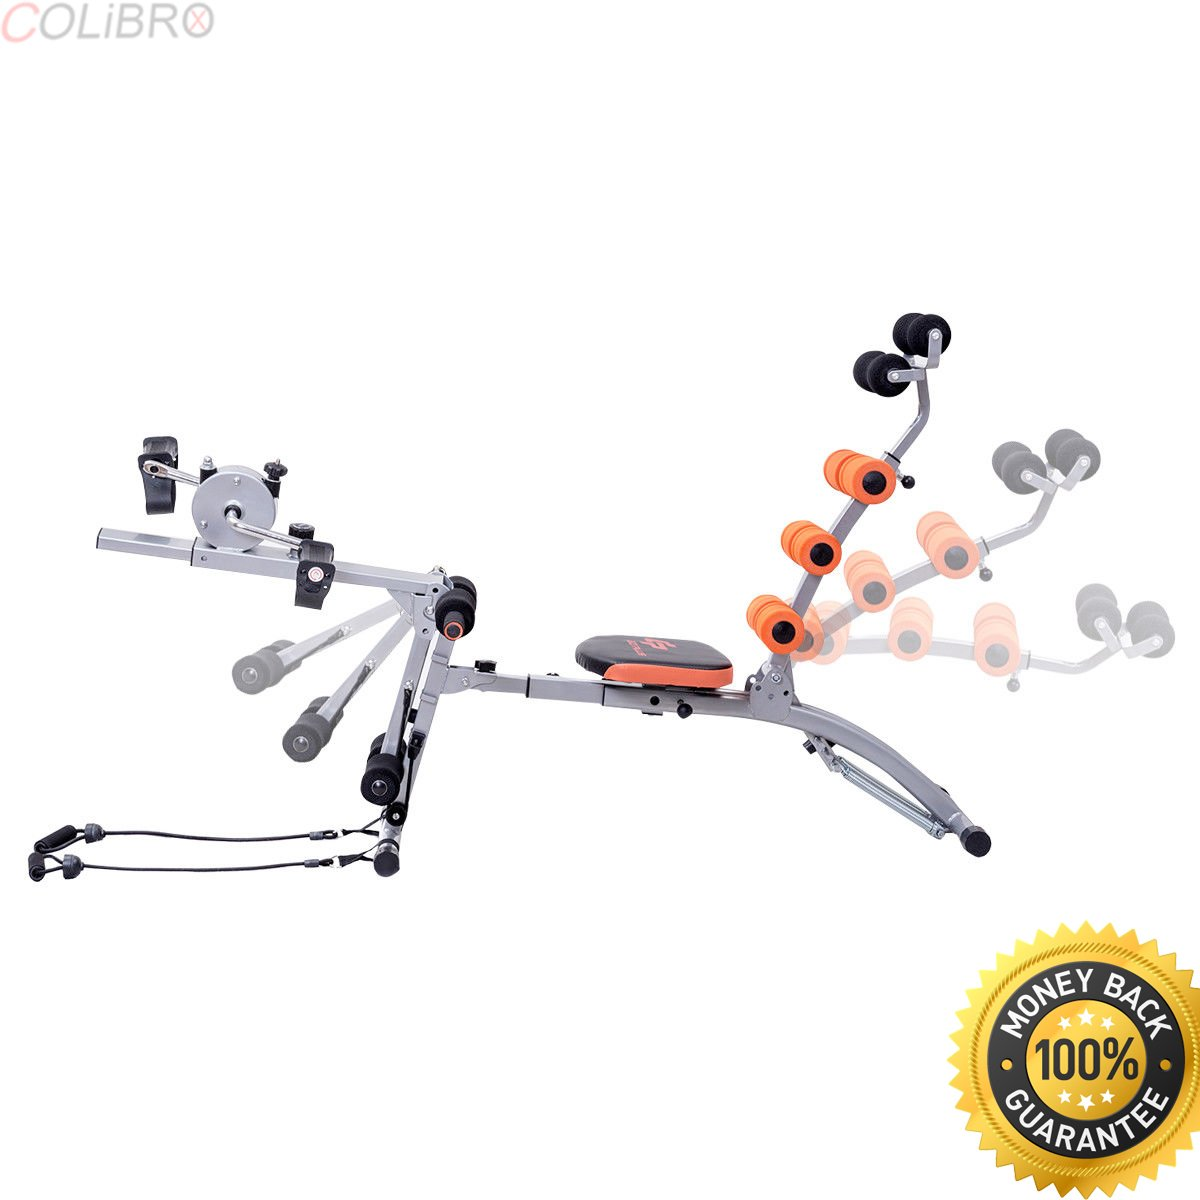 COLIBROX--Multi-functional Twister AB Rocket Abdominal Trainer Core Trainer Bench Stepper. ab rocket twister price. ab rocket twister manual. ab rocket twister abdominal trainer. ab rocket exercises.